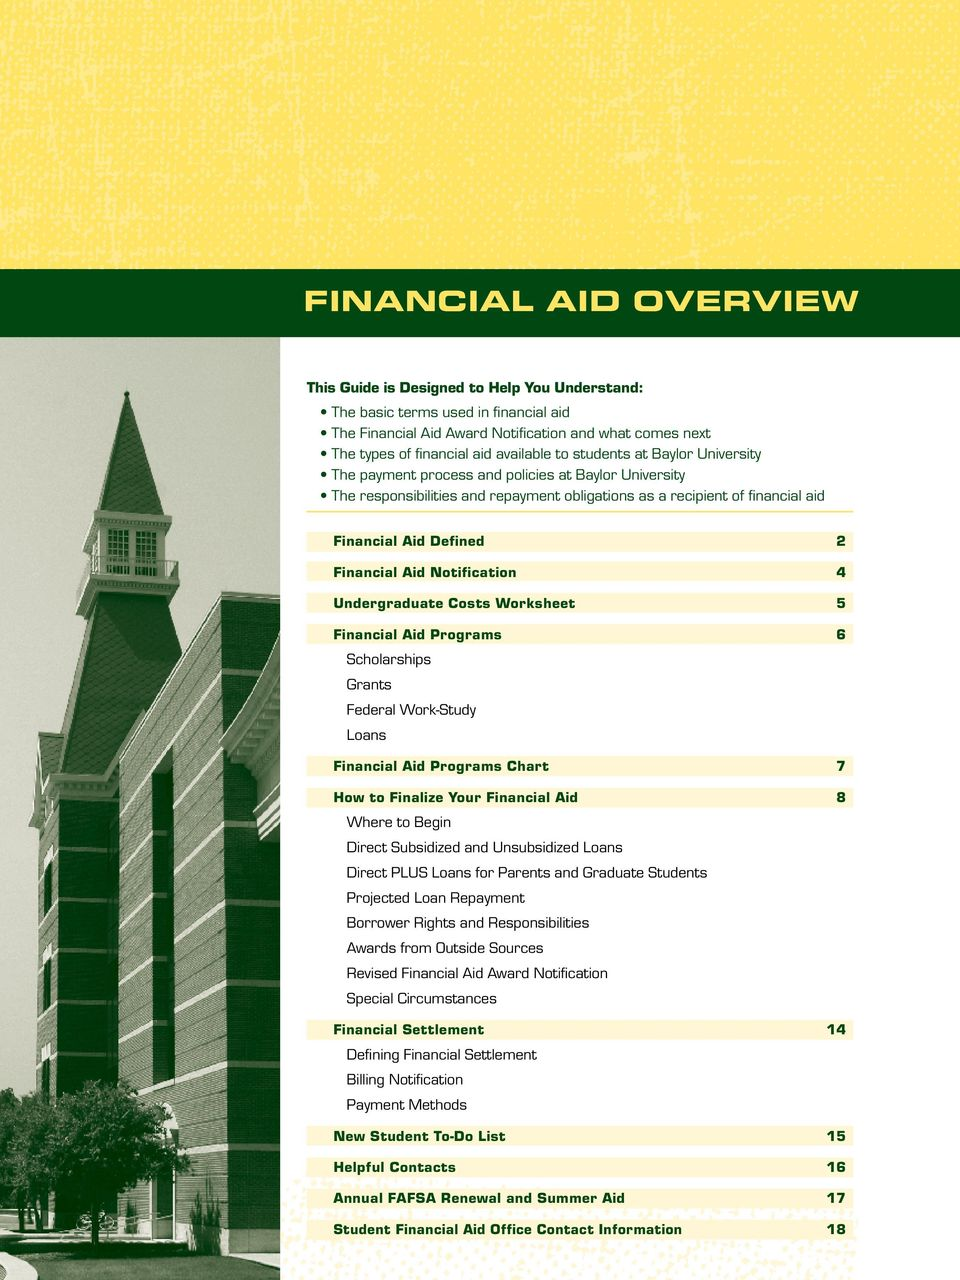 Financial Aid Notification 4 Undergraduate Costs Worksheet 5 Financial Aid Programs 6 Scholarships Grants Federal Work-Study Loans Financial Aid Programs Chart 7 How to Finalize Your Financial Aid 8